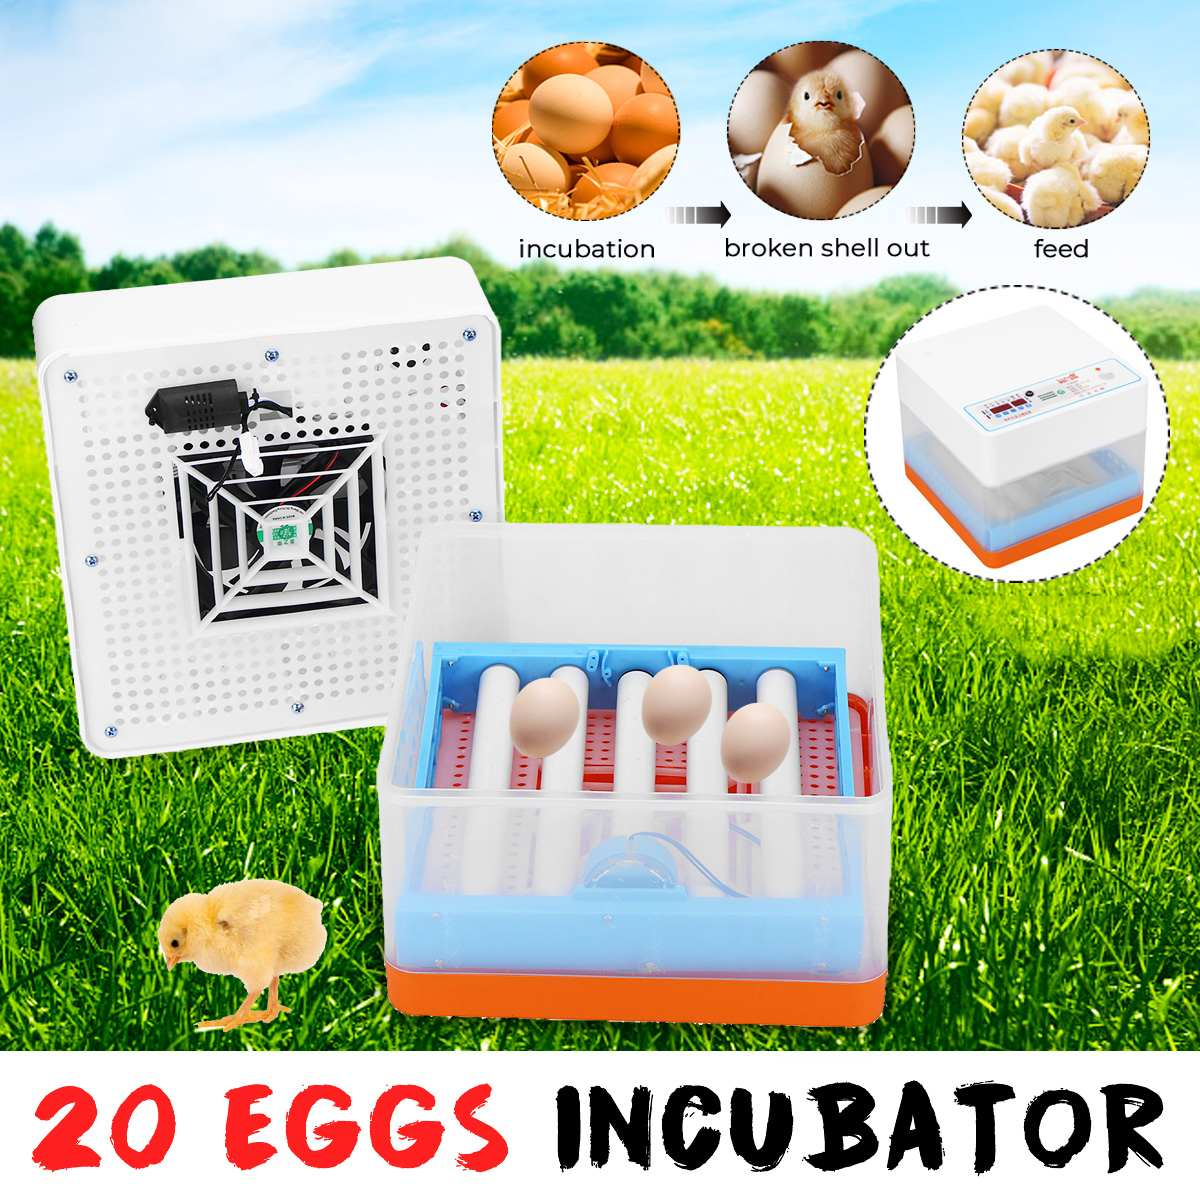 Intelligent Full-automatic Egg Incubator Hatcher 20 Eggs Electronic Hatching Machine For Chicken Duck Transparent EU Plug image